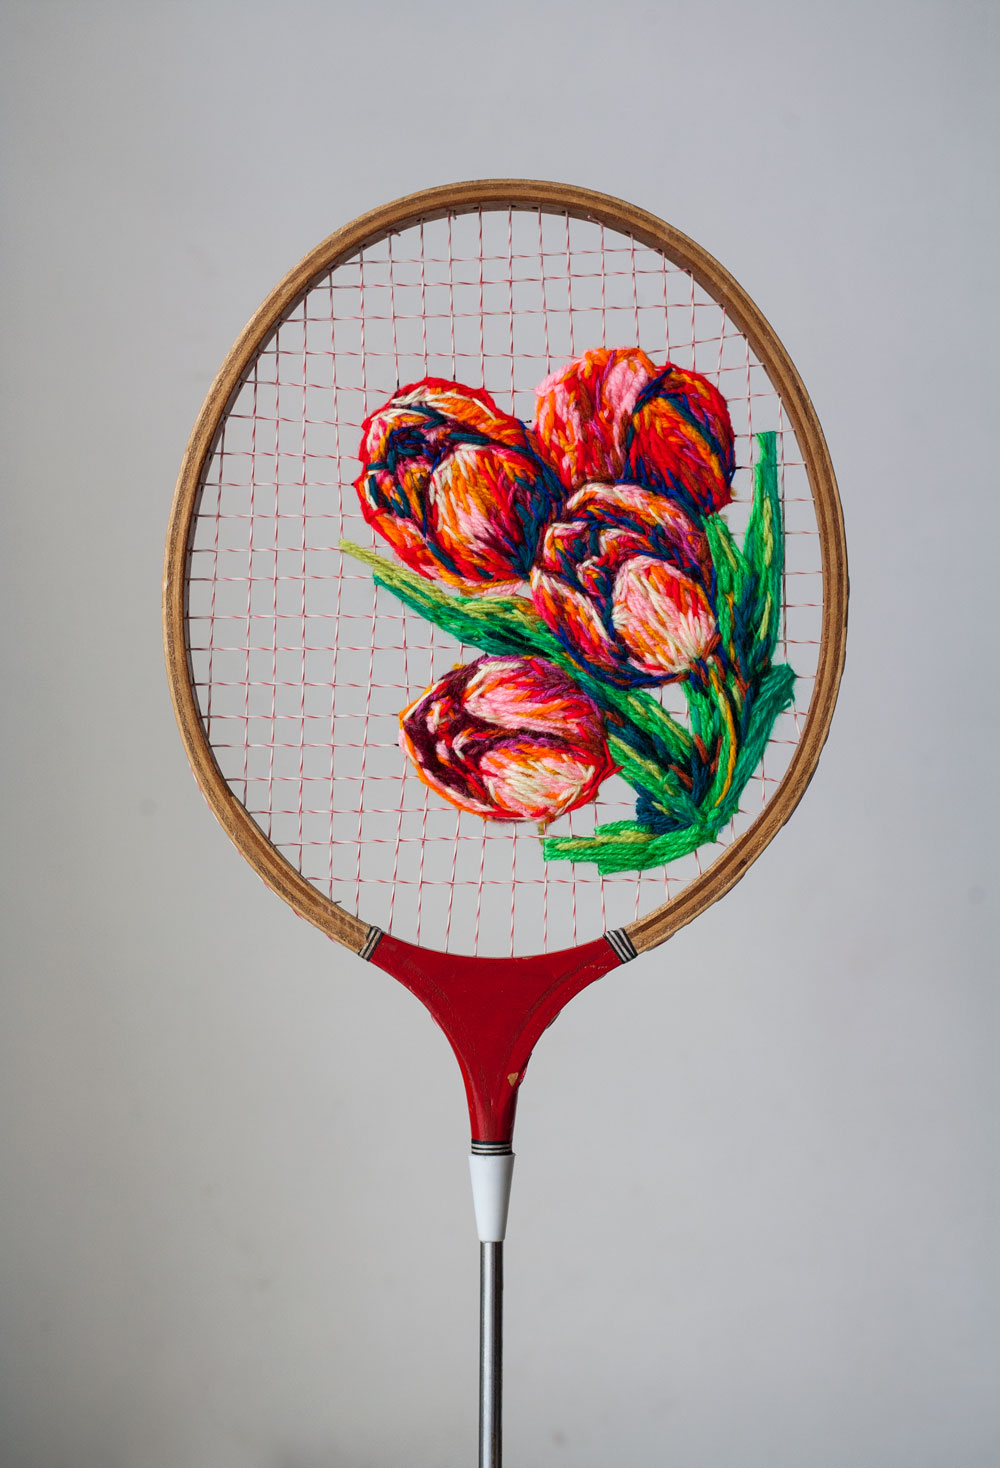 danielle_clough_tennis_racket_embroidery_01